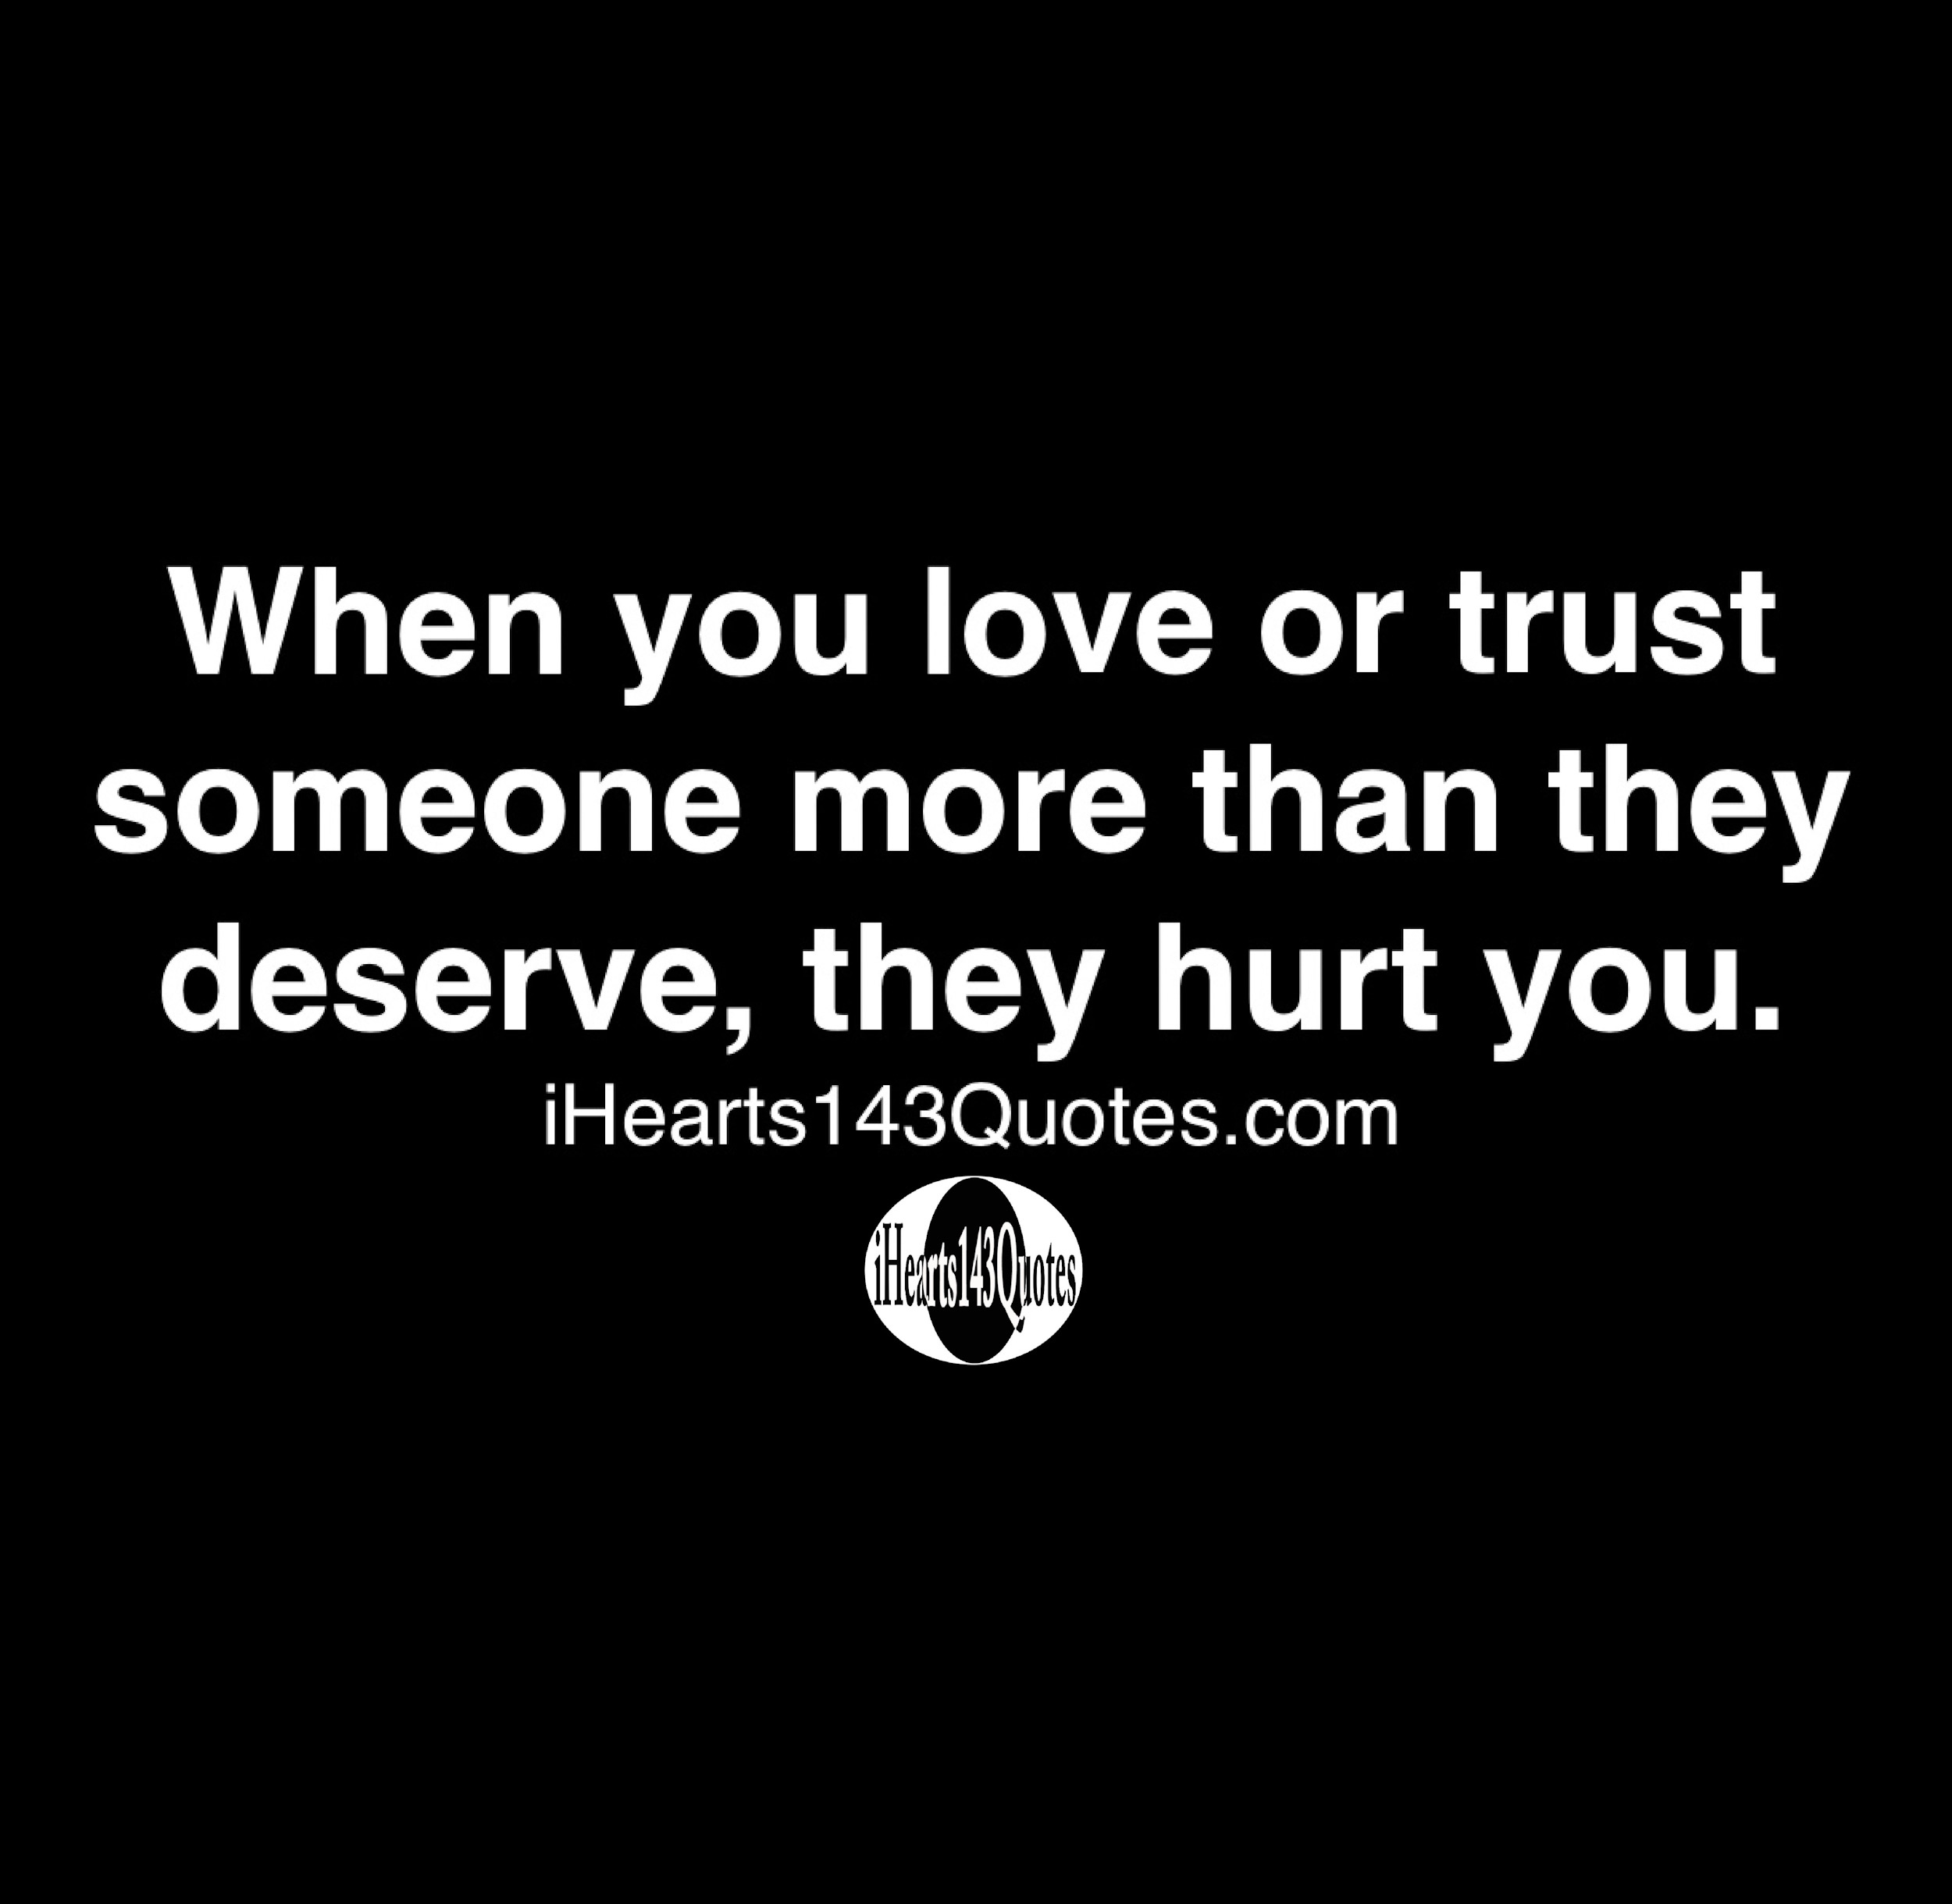 Hurting Quotes Archives Ihearts143quotes